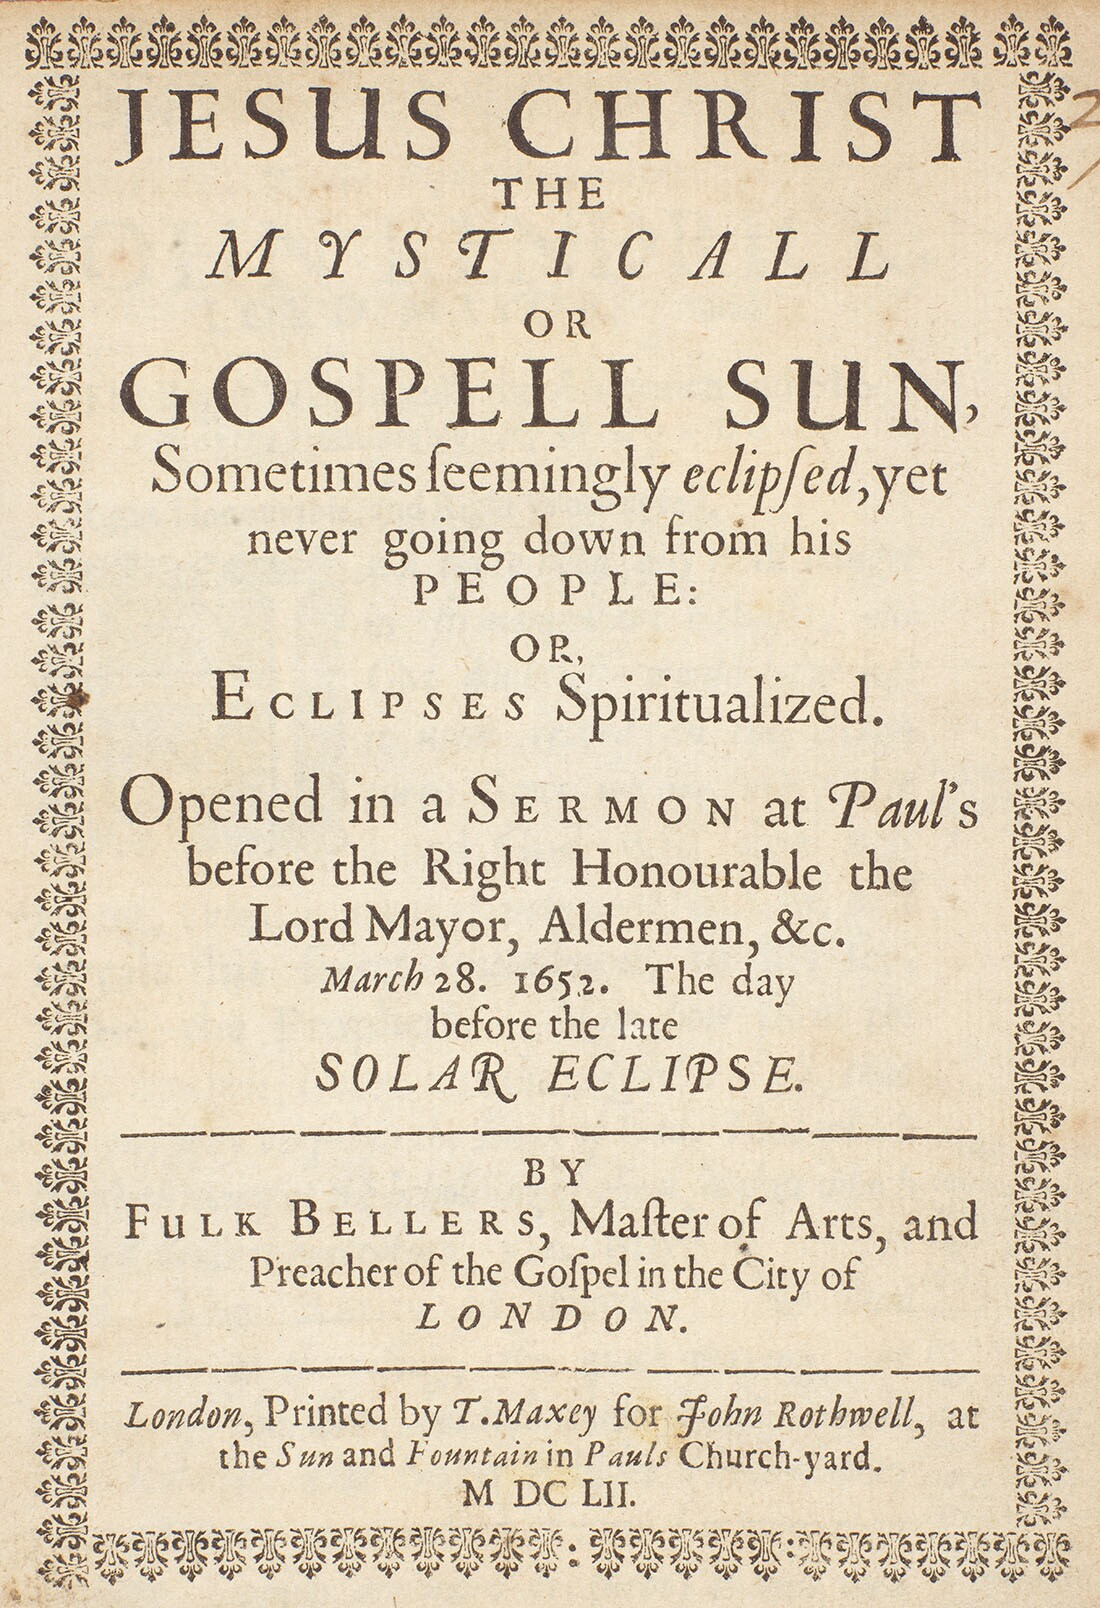 Fulk Bellers Jesus Christ the Mysticall or Gospell Sun, 1652 Enlargement from scan of original, 60 x 48 | Rare Book Collection, Huntington Library